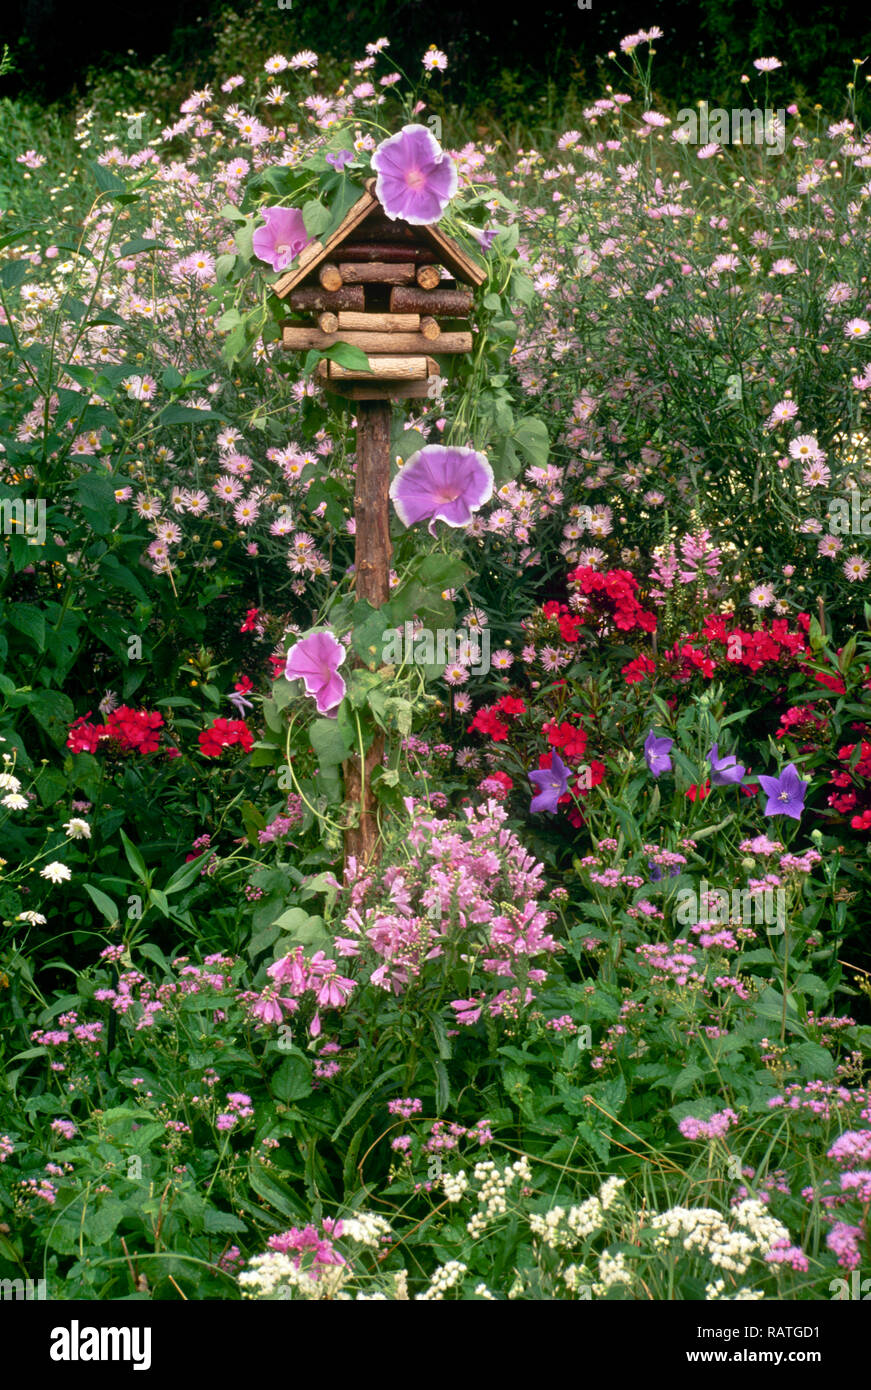 Fanciful log cabin birdhouse in blooming summer garden of morning glories, and gaudy flowers, Missouri USA - Stock Image